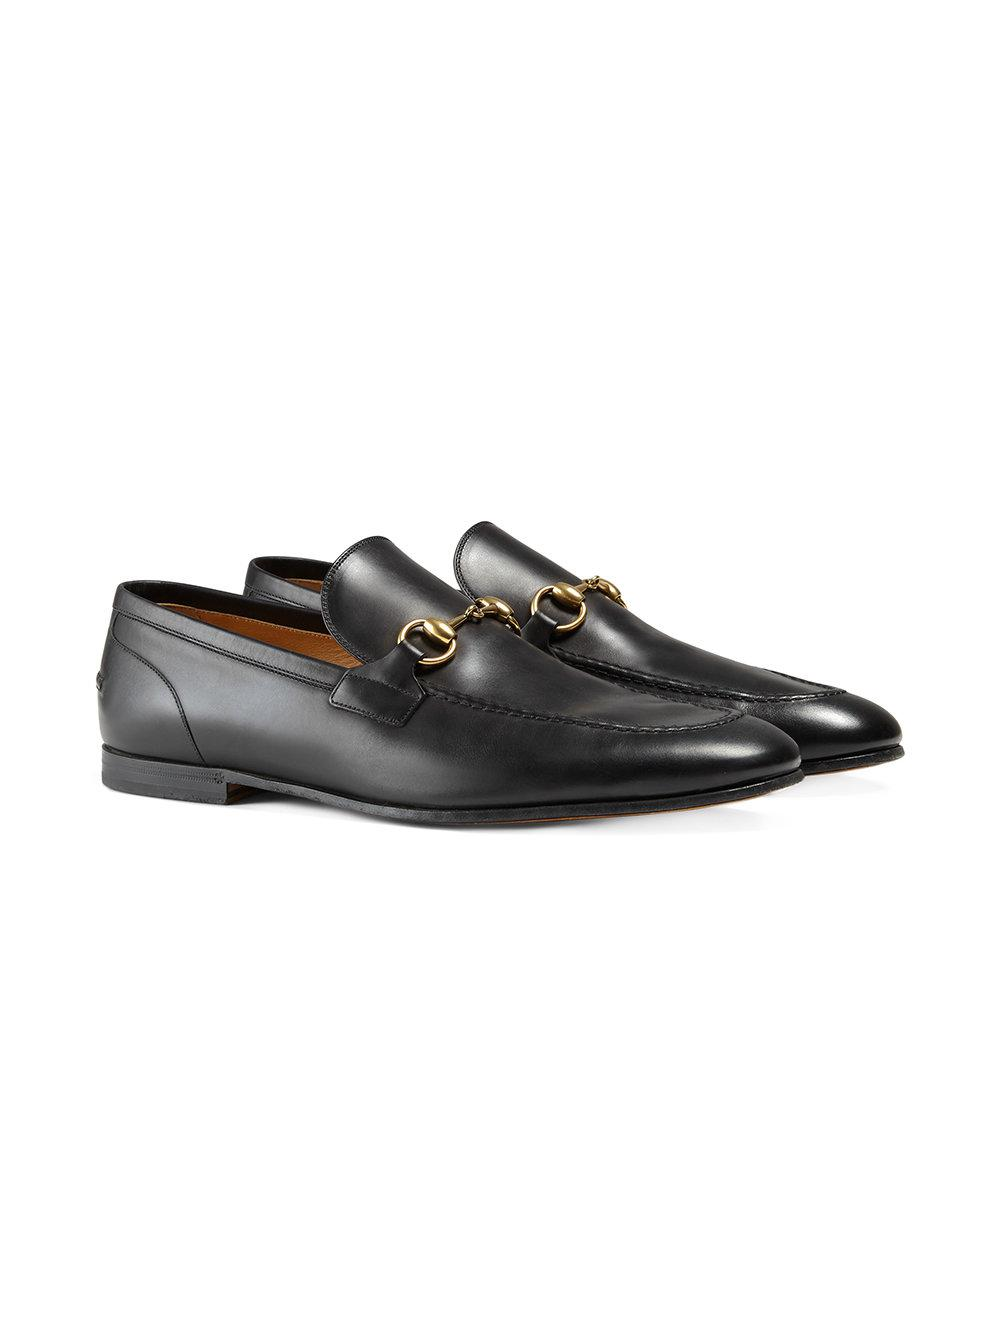 50f8c760e Gucci Jordaan Leather Loafer in Black for Men - Save 5% - Lyst